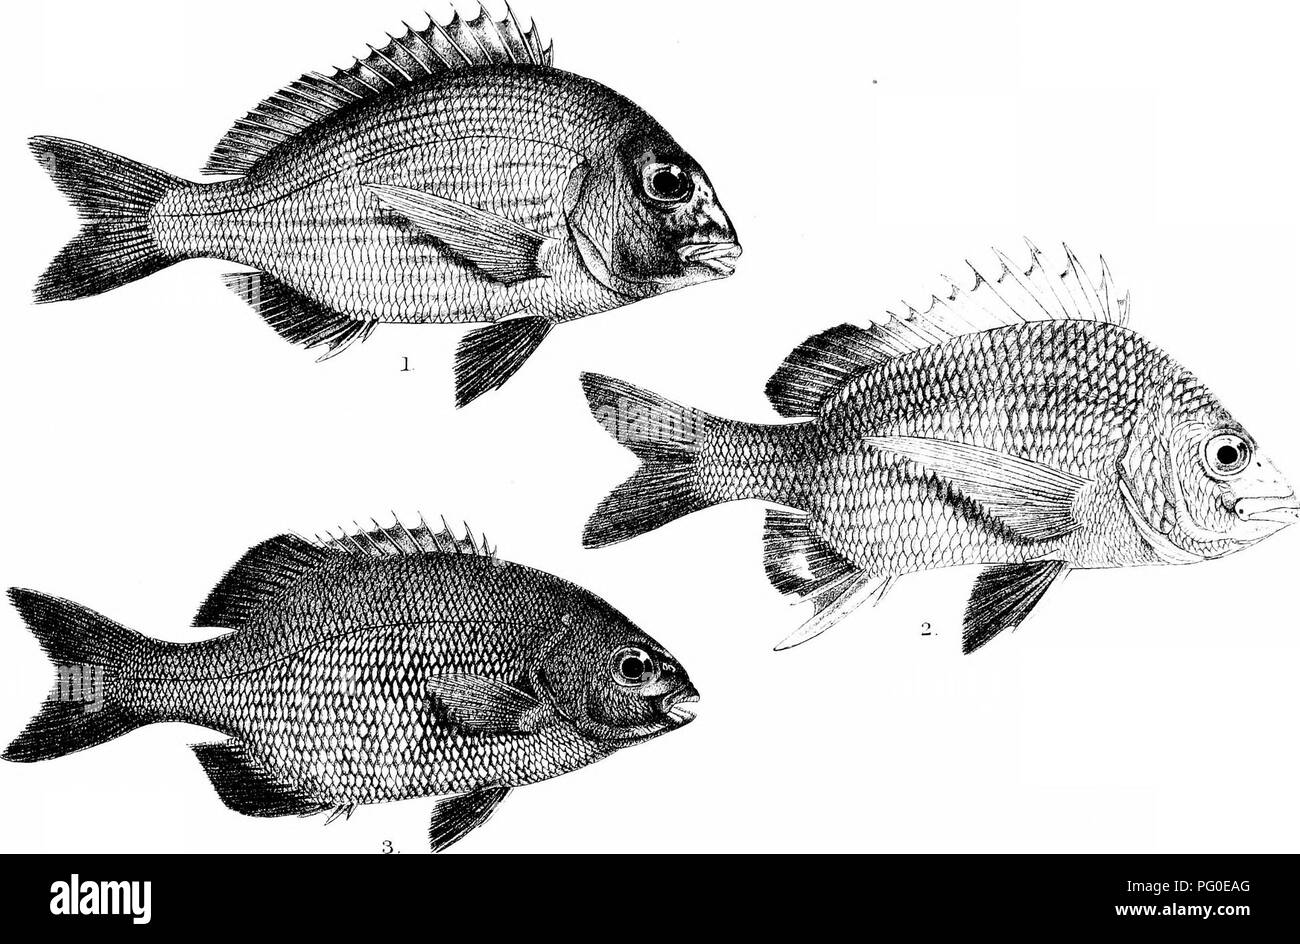 . The fishes of India; being a natural history of the fishes known to inhabit the seas and fresh waters of India, Burma, and Ceylon. Fishes. Days KsLes of tidia. Plate :{:{iv N. Please note that these images are extracted from scanned page images that may have been digitally enhanced for readability - coloration and appearance of these illustrations may not perfectly resemble the original work.. Day, Francis, 1829-1889. London, B. Quaritch - Stock Image